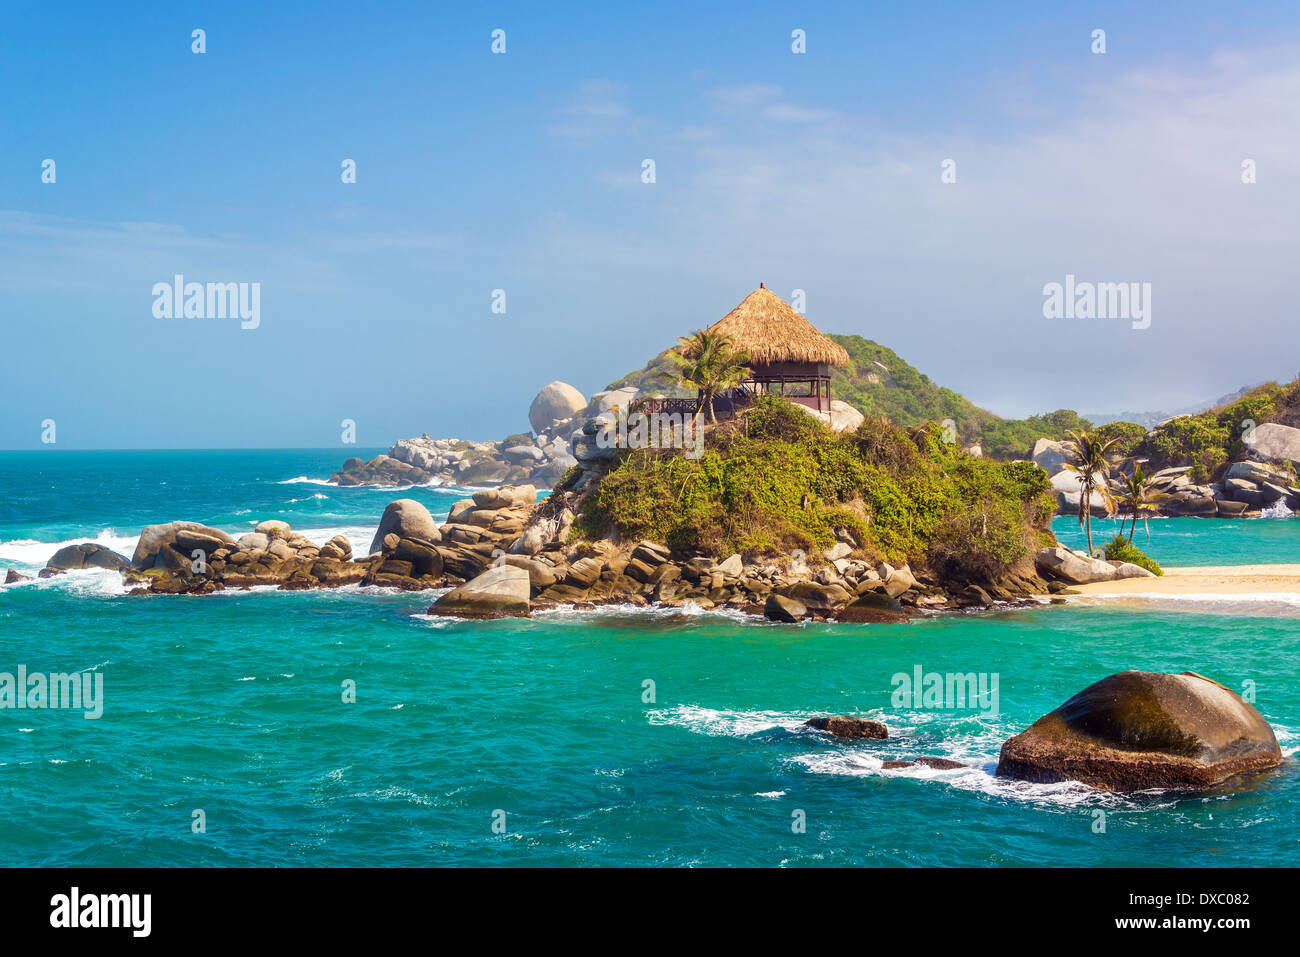 Turquoise water and beach shack at Cabo San Juan del Guia in Tayrona National Park in Colombia - Stock Image